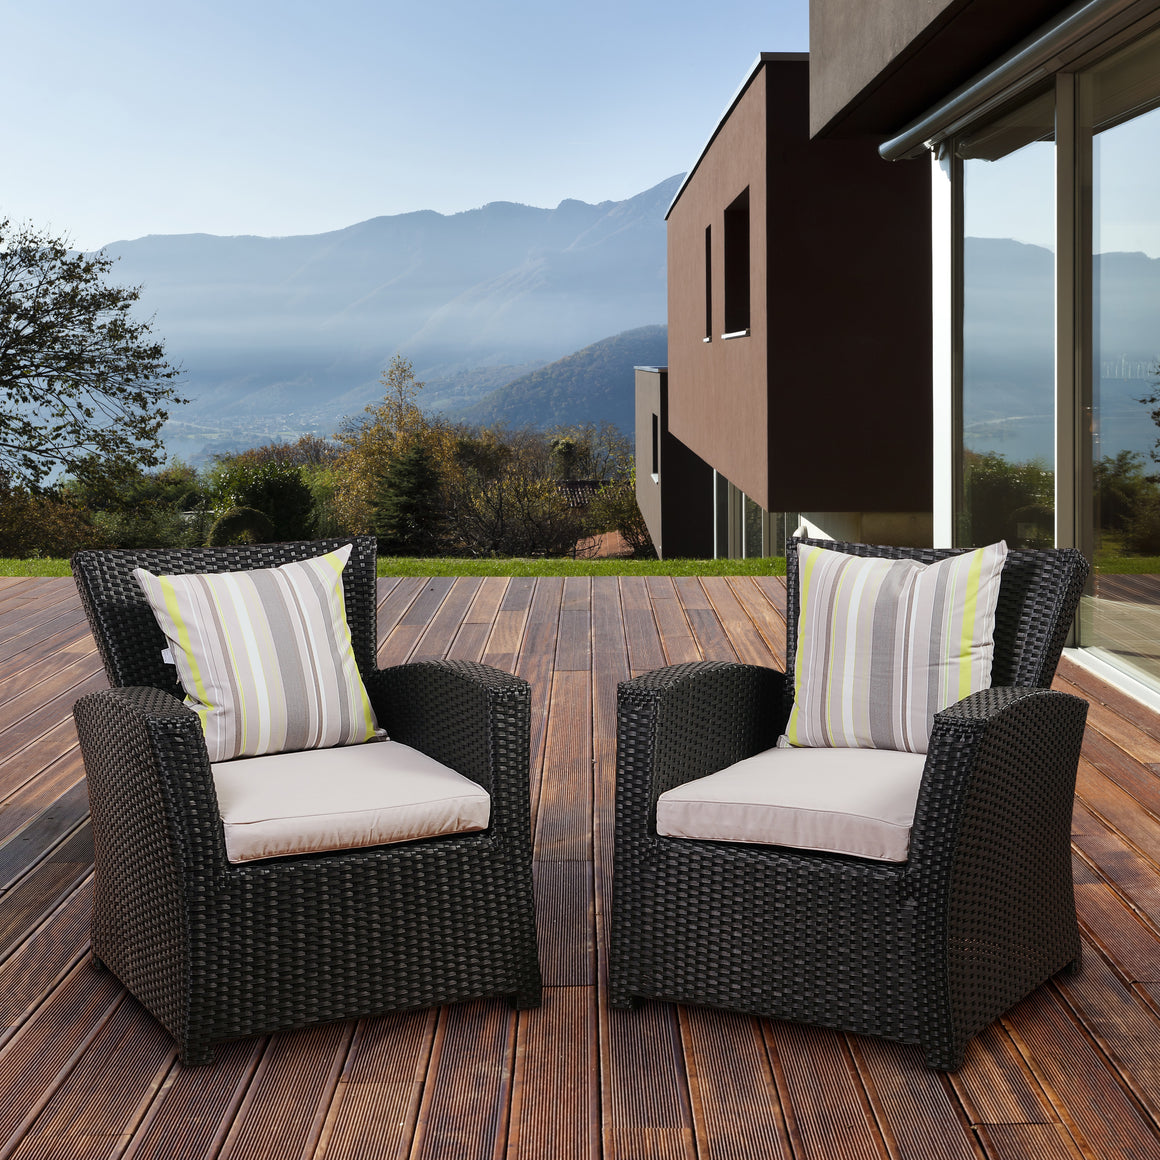 Atlantic Staffordshire 2 Piece Black Wicker Arm Chair Set , International Home Miami- grayburd